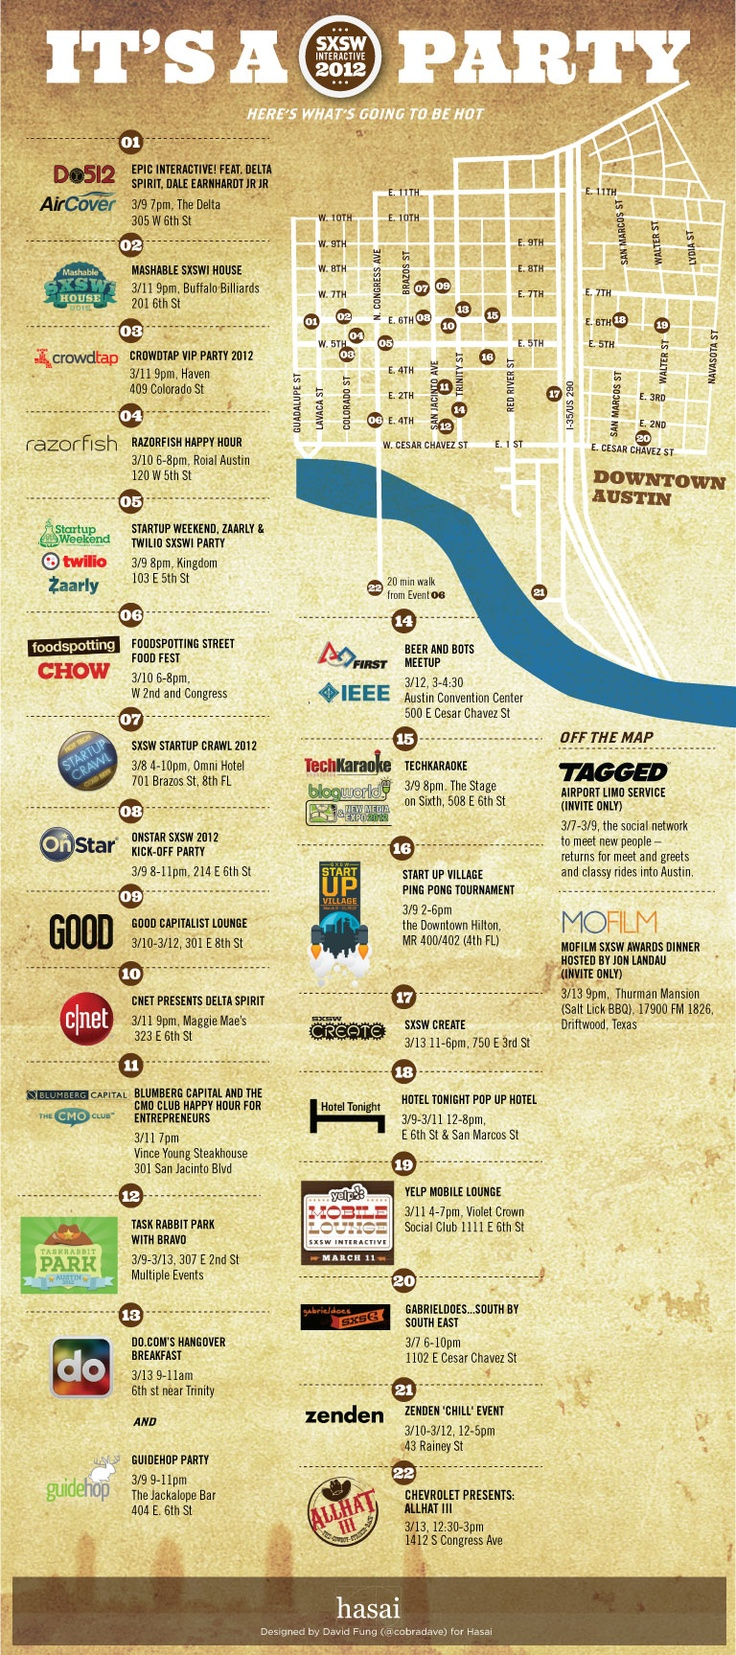 The #SXSW Party Guide: The 22 Hot Spots for 2012 [infographic] cc: @britopian